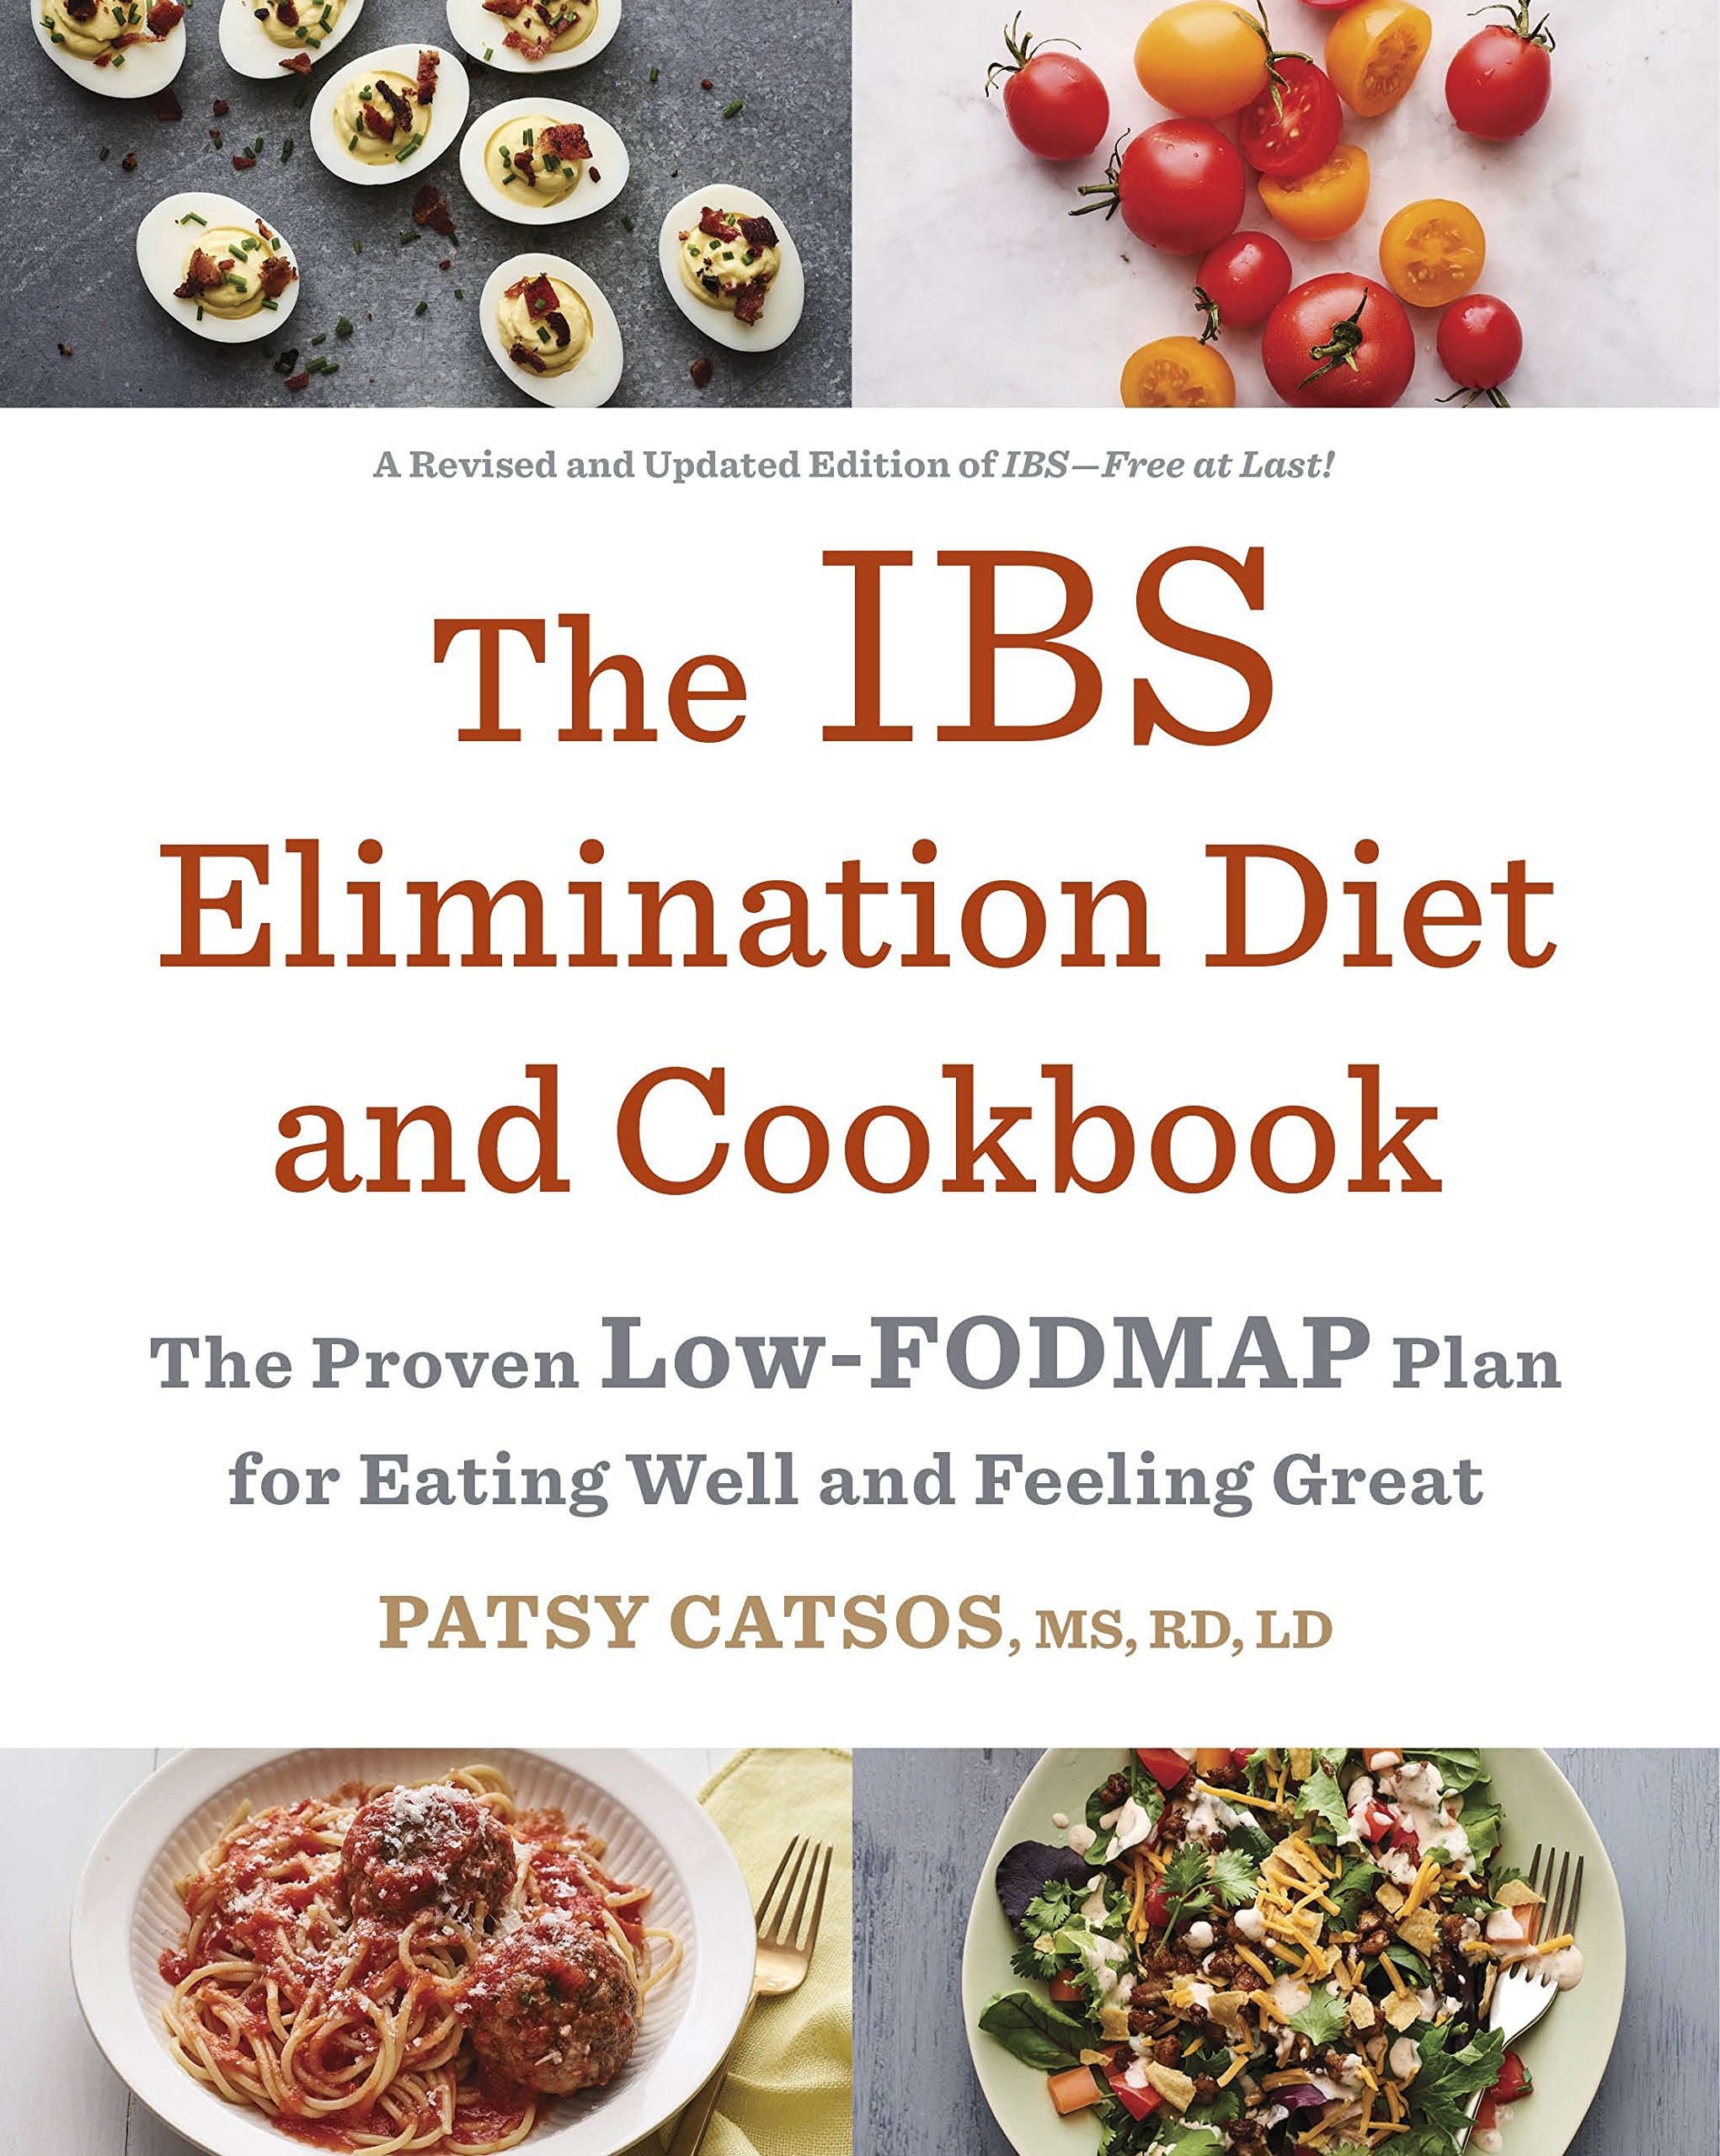 The IBS Elimination Diet and Cookbook: The Proven Low-FODMAP